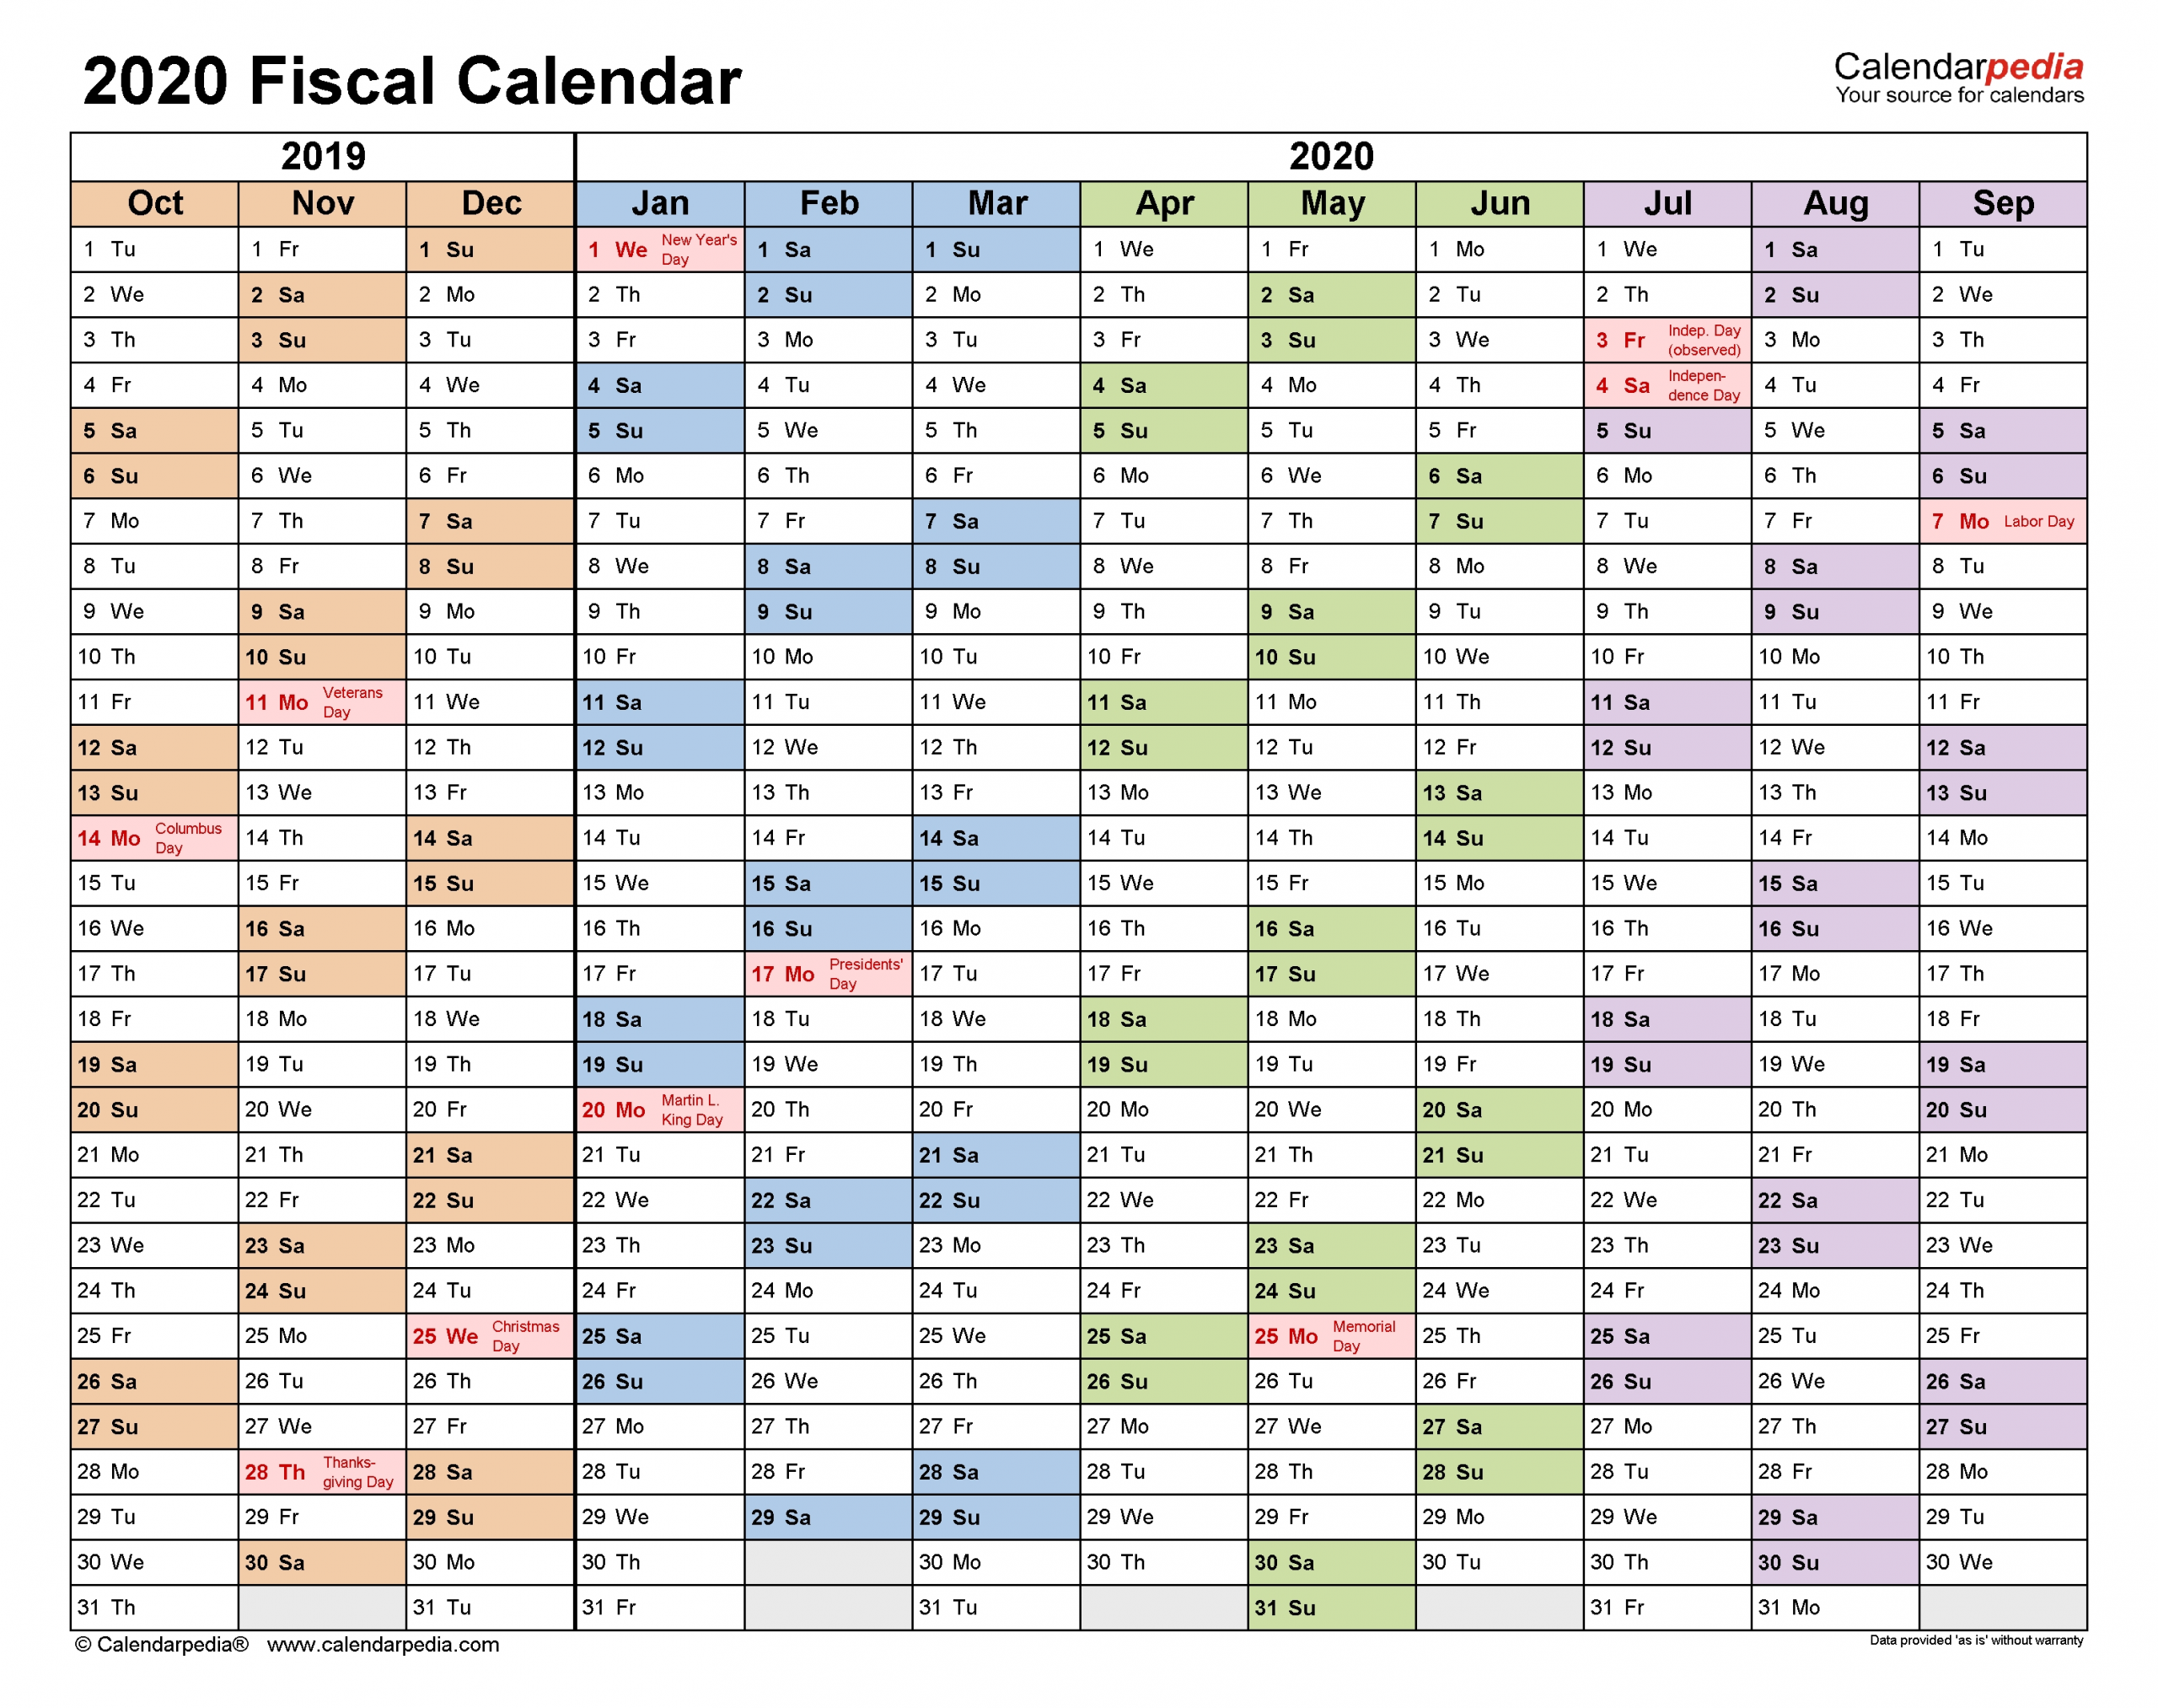 Get Financial Week Calendar